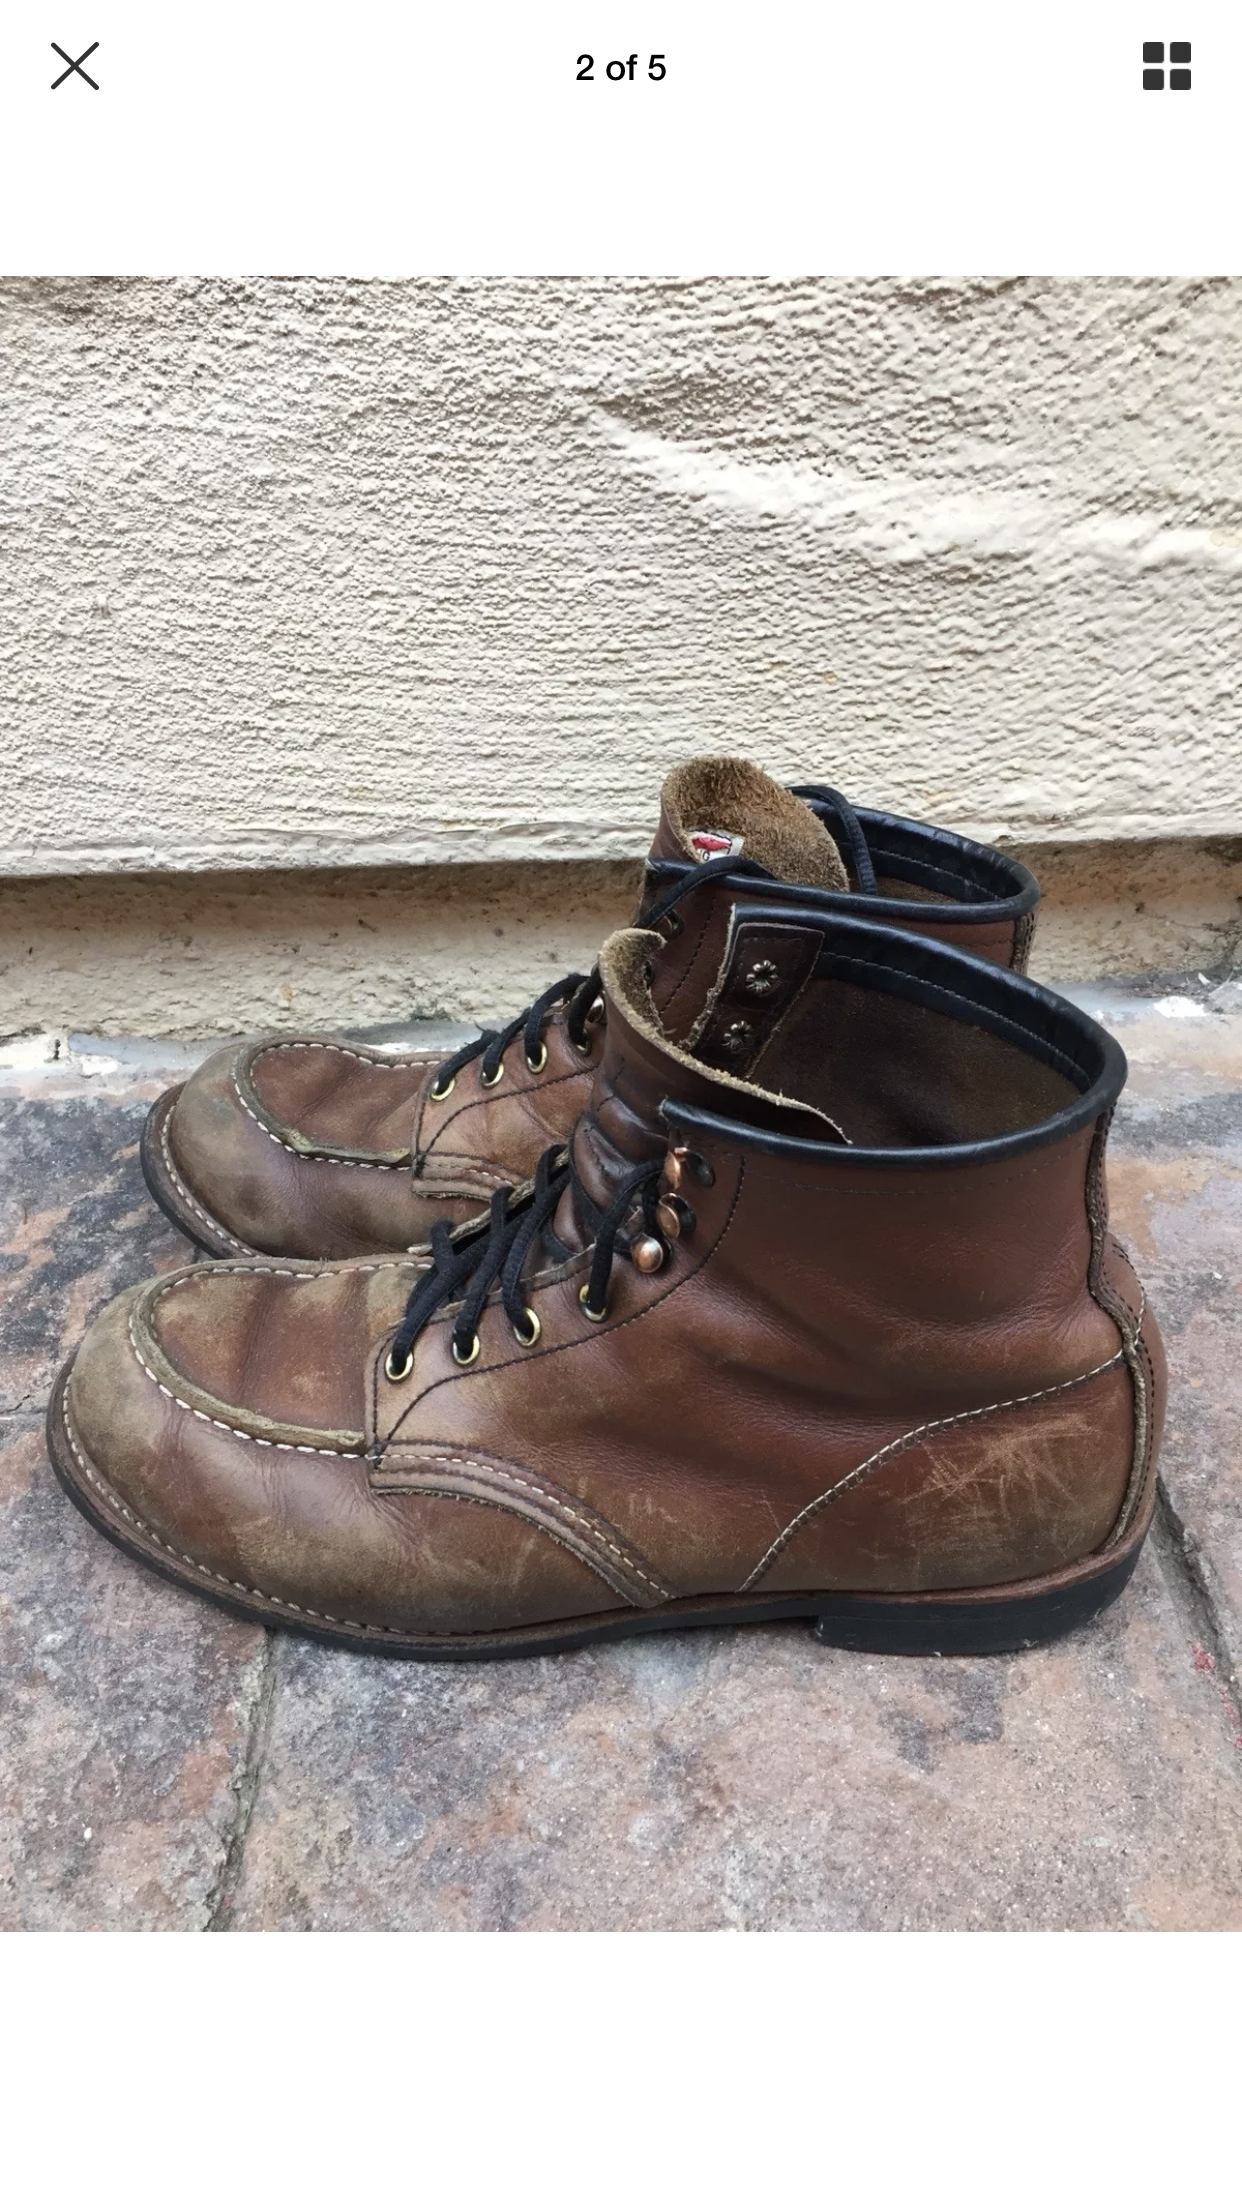 3e6186857d3 Well worn Red Wing 2954's | Boots in 2019 | Boots, Boat shoes, Shoes